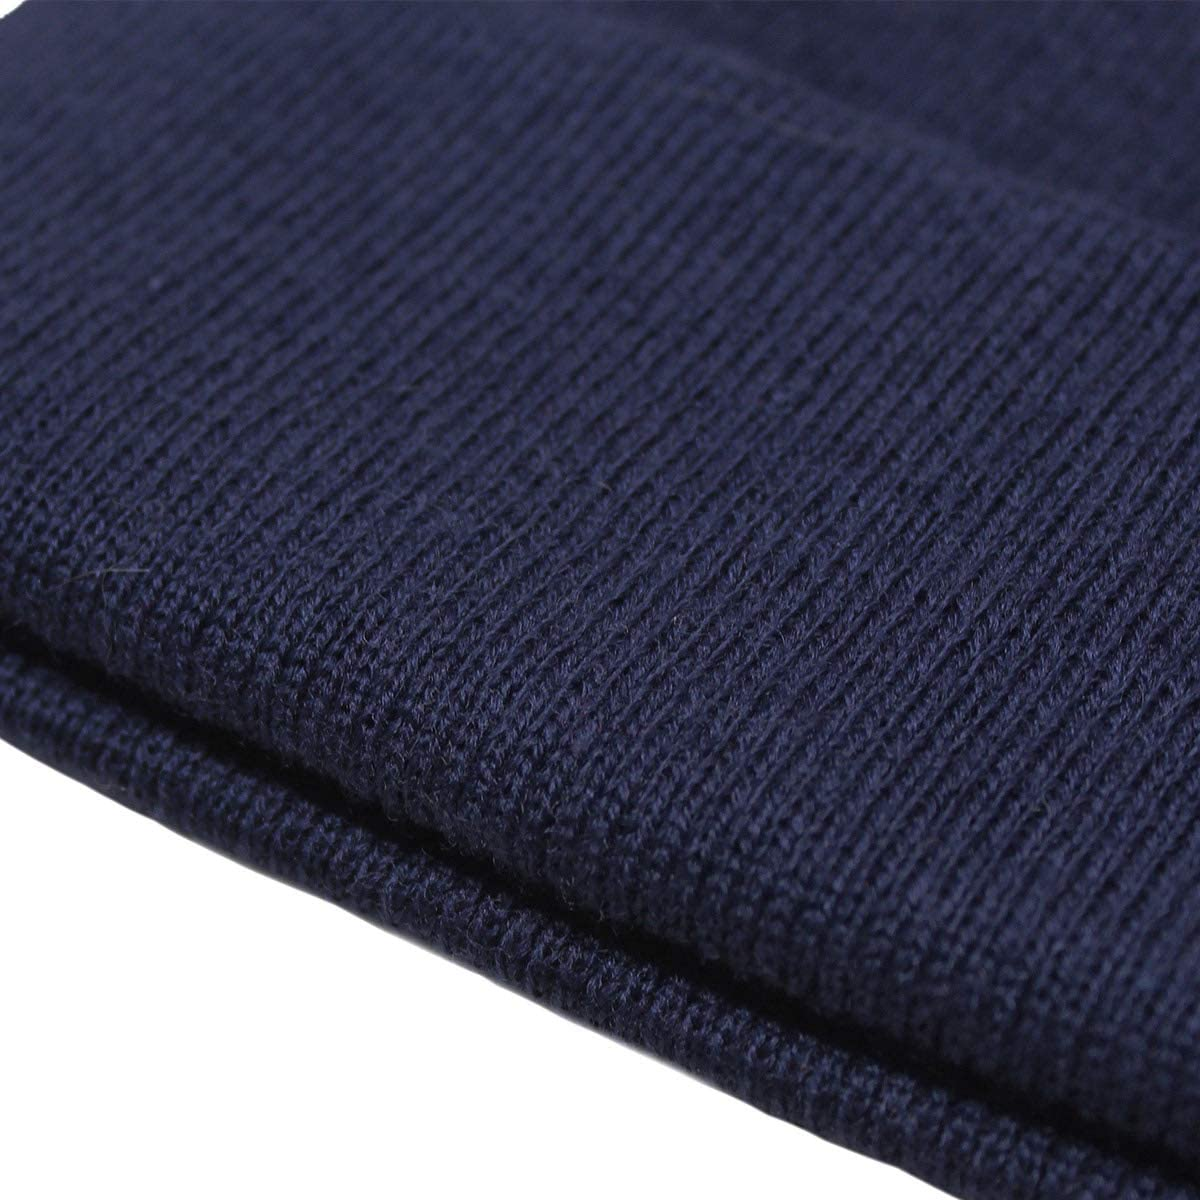 Unisex Knitted Beanie Cap Windpoof Soft Winter Hats Casual Skully Hats